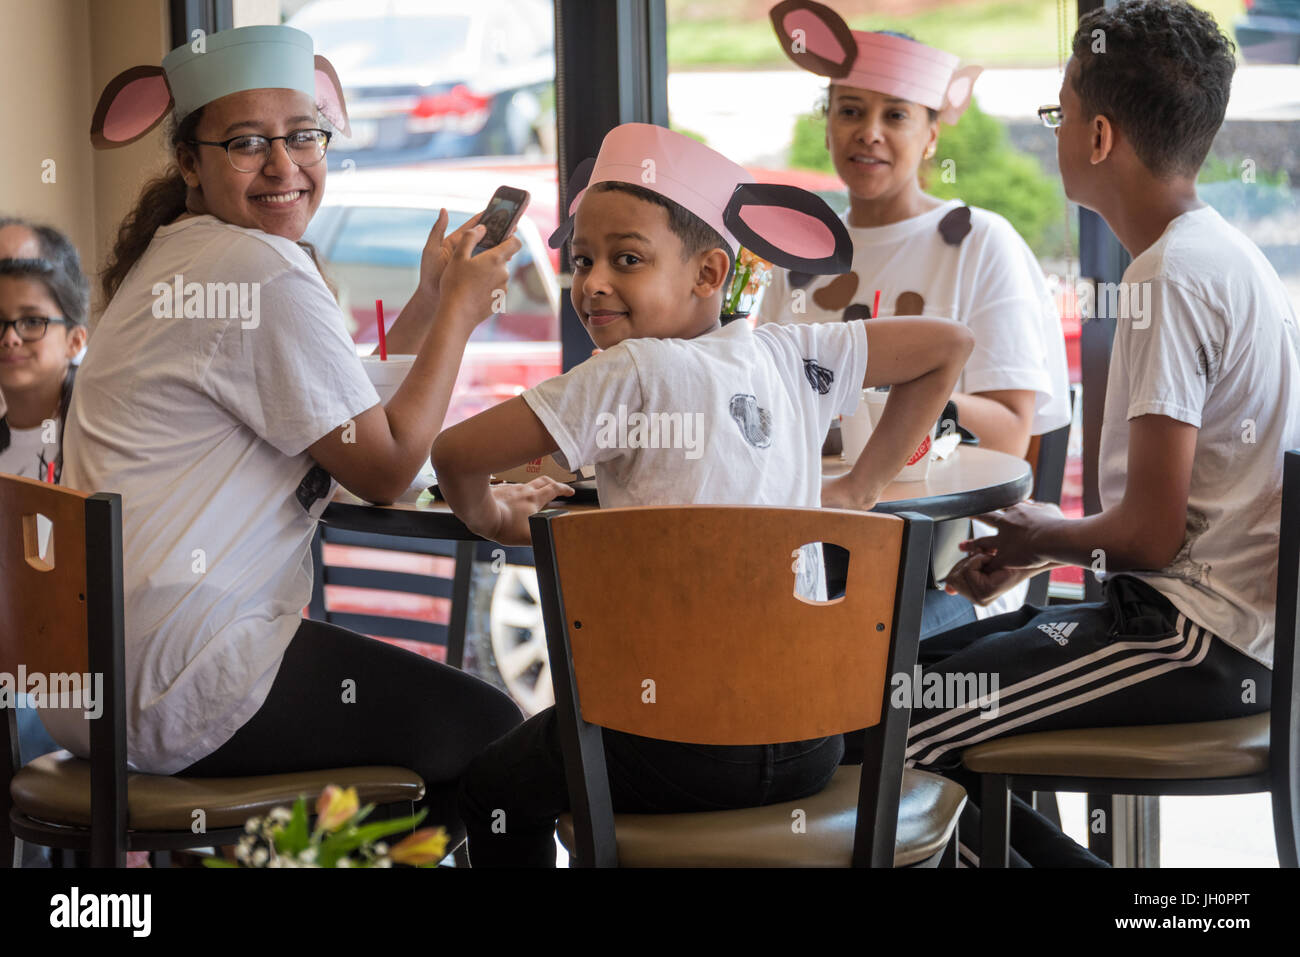 Chick-fil-A restaurant fans wearing homemade cow outfits for Chick-fil-A's Cow Appreciation Day. - Stock Image